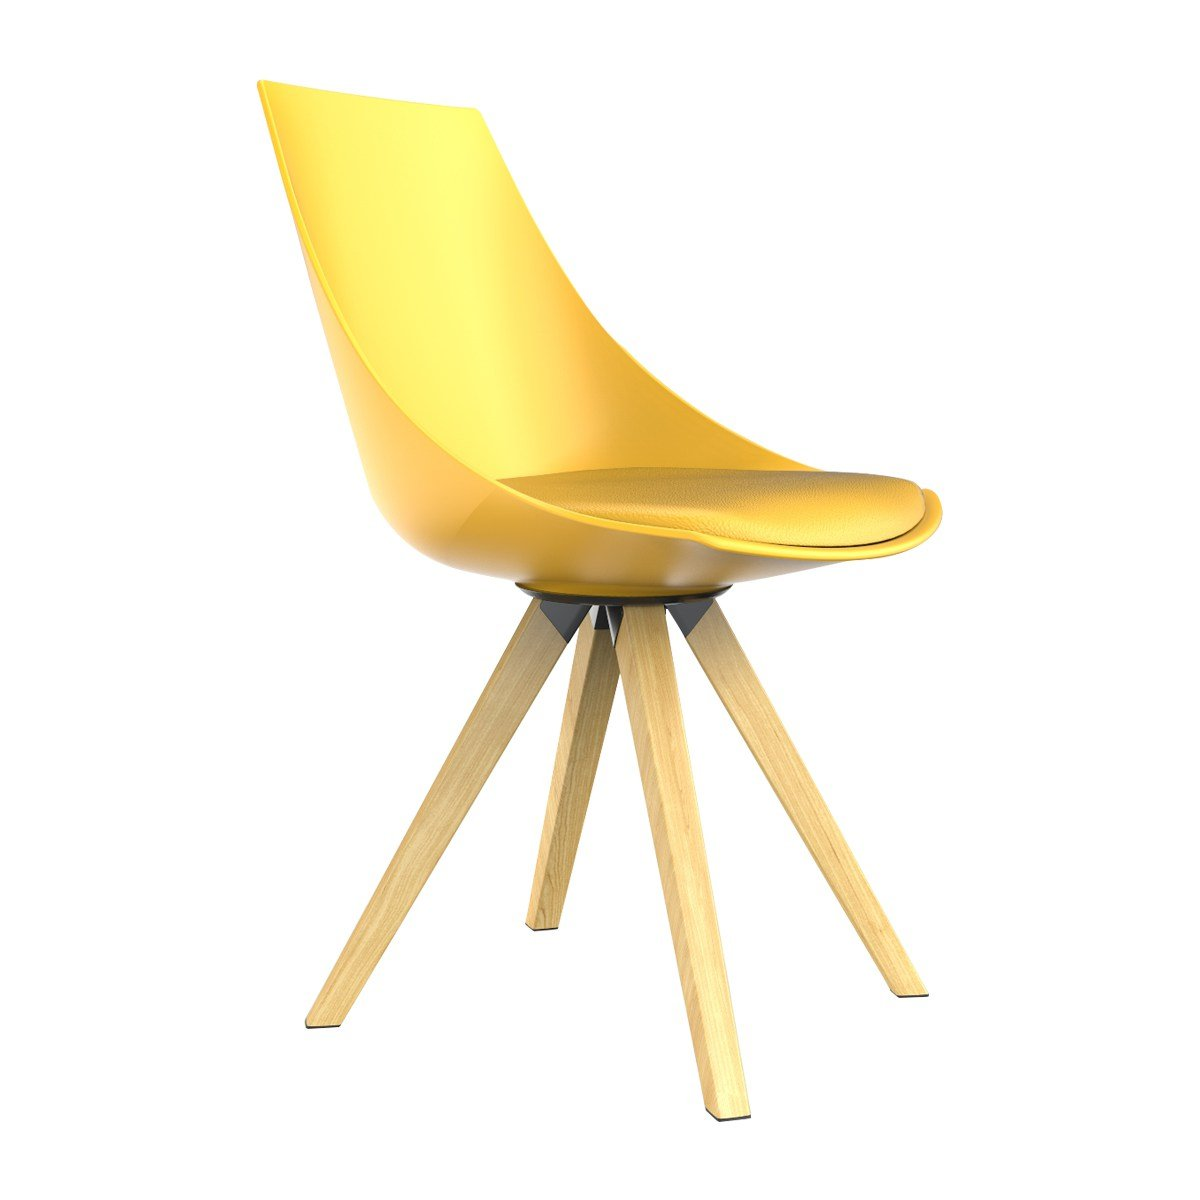 Hestia Haus Dining Chair PP Shell Yellow Kitchen Chairs with Fixed Metal Legs with Wooden Grain Original Modern Design